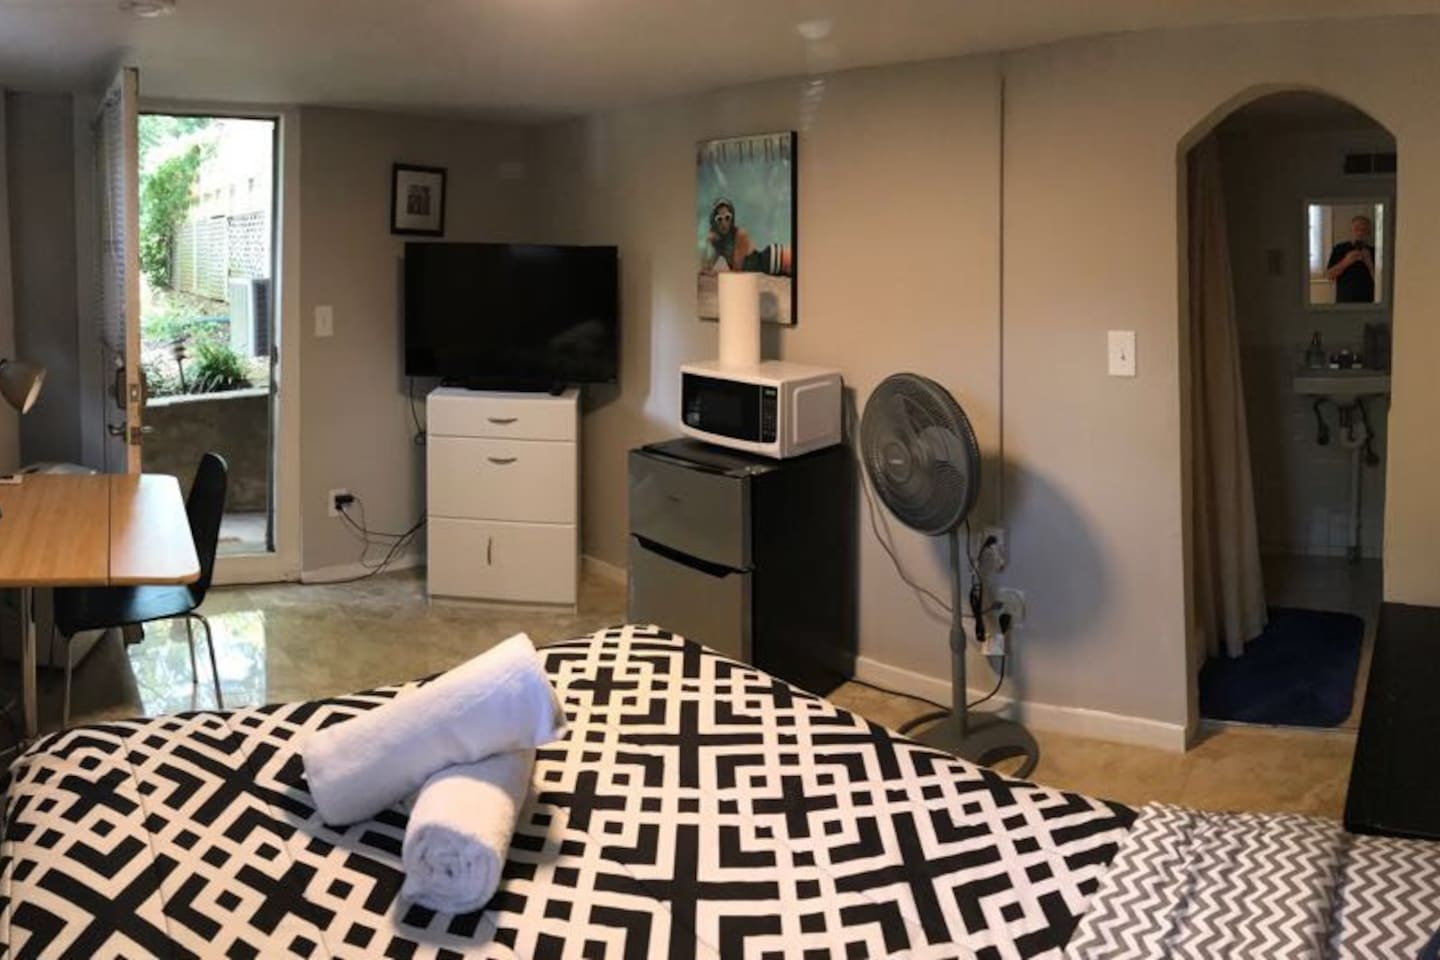 Studio with full bed, fresh linens/towels, flat screen TV, refridgerator and desk